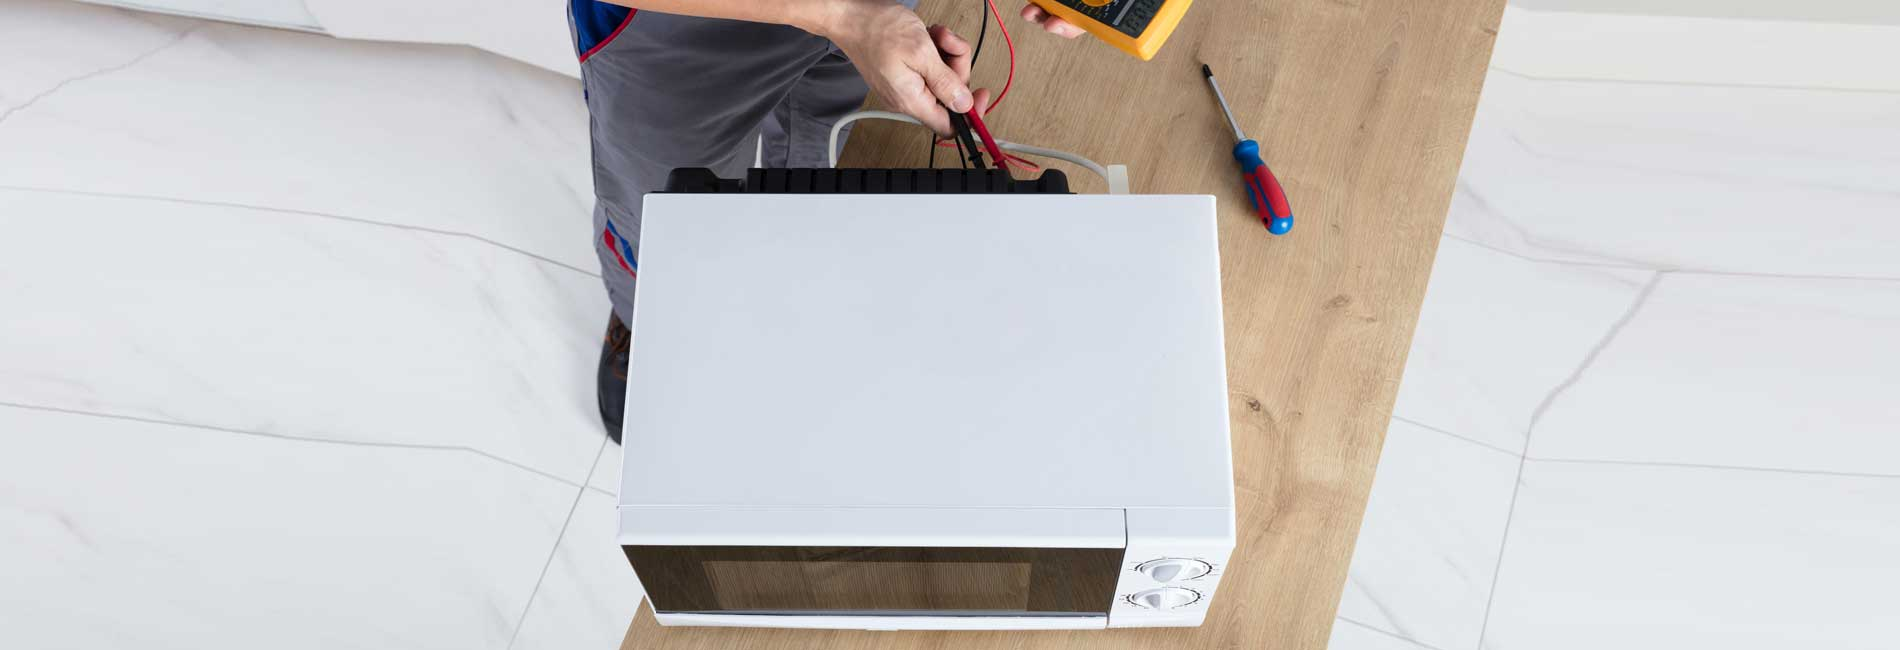 Microwave Oven Repair in Vallalar Nagar